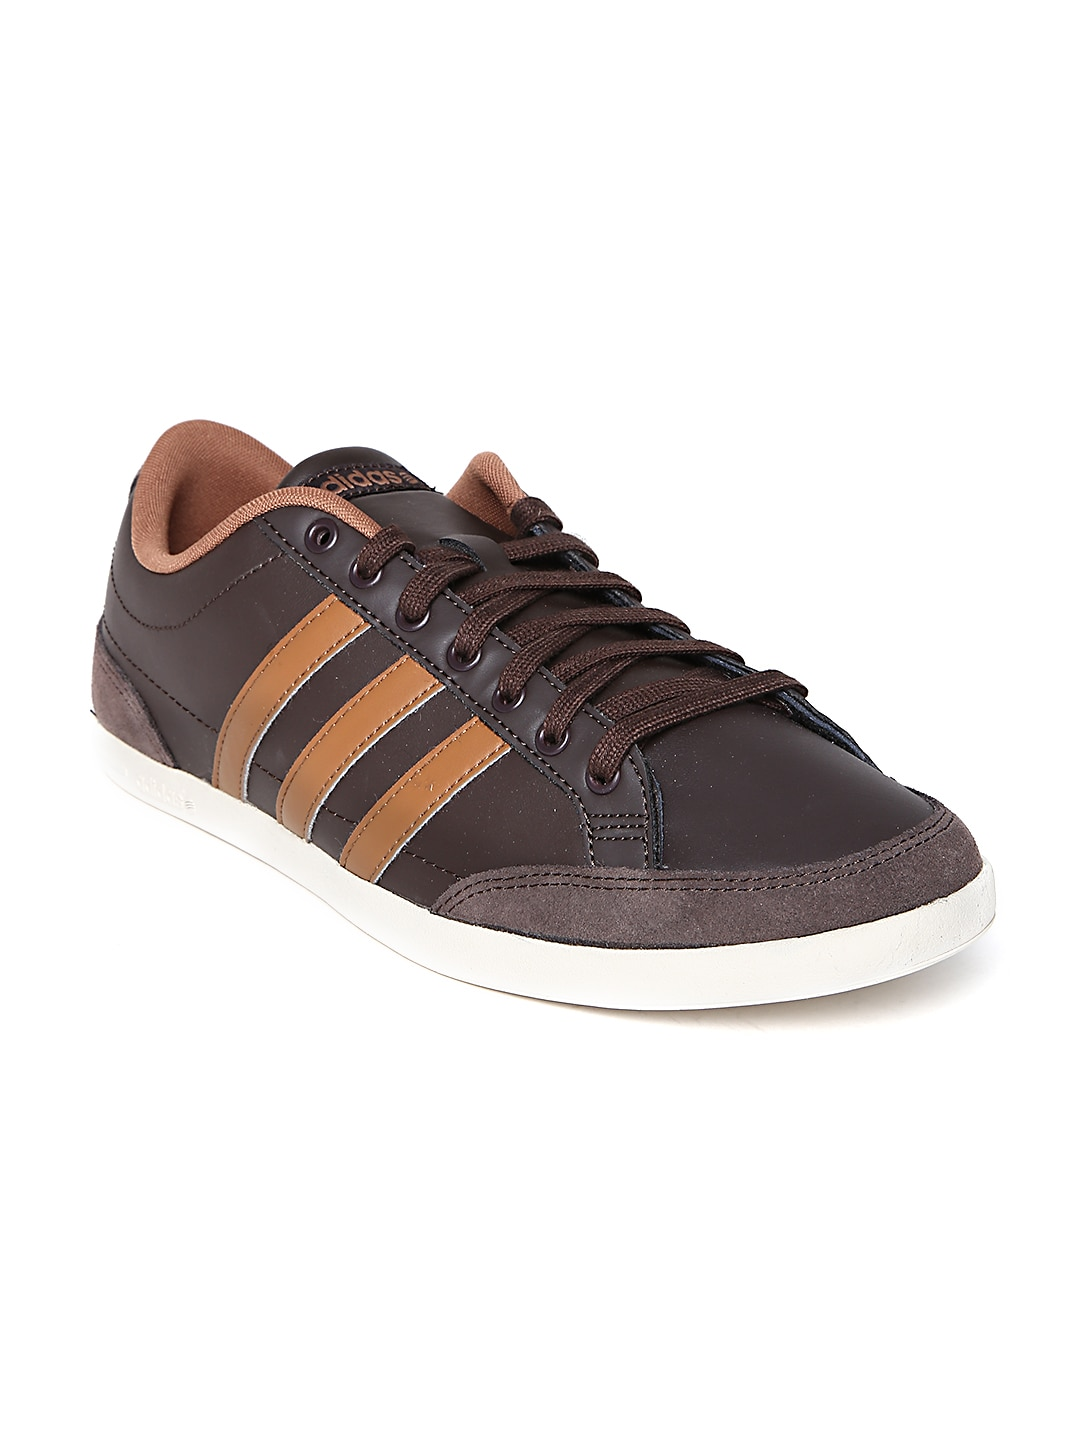 Adidas Neo Caflaire Lo Mens Casual Shoes